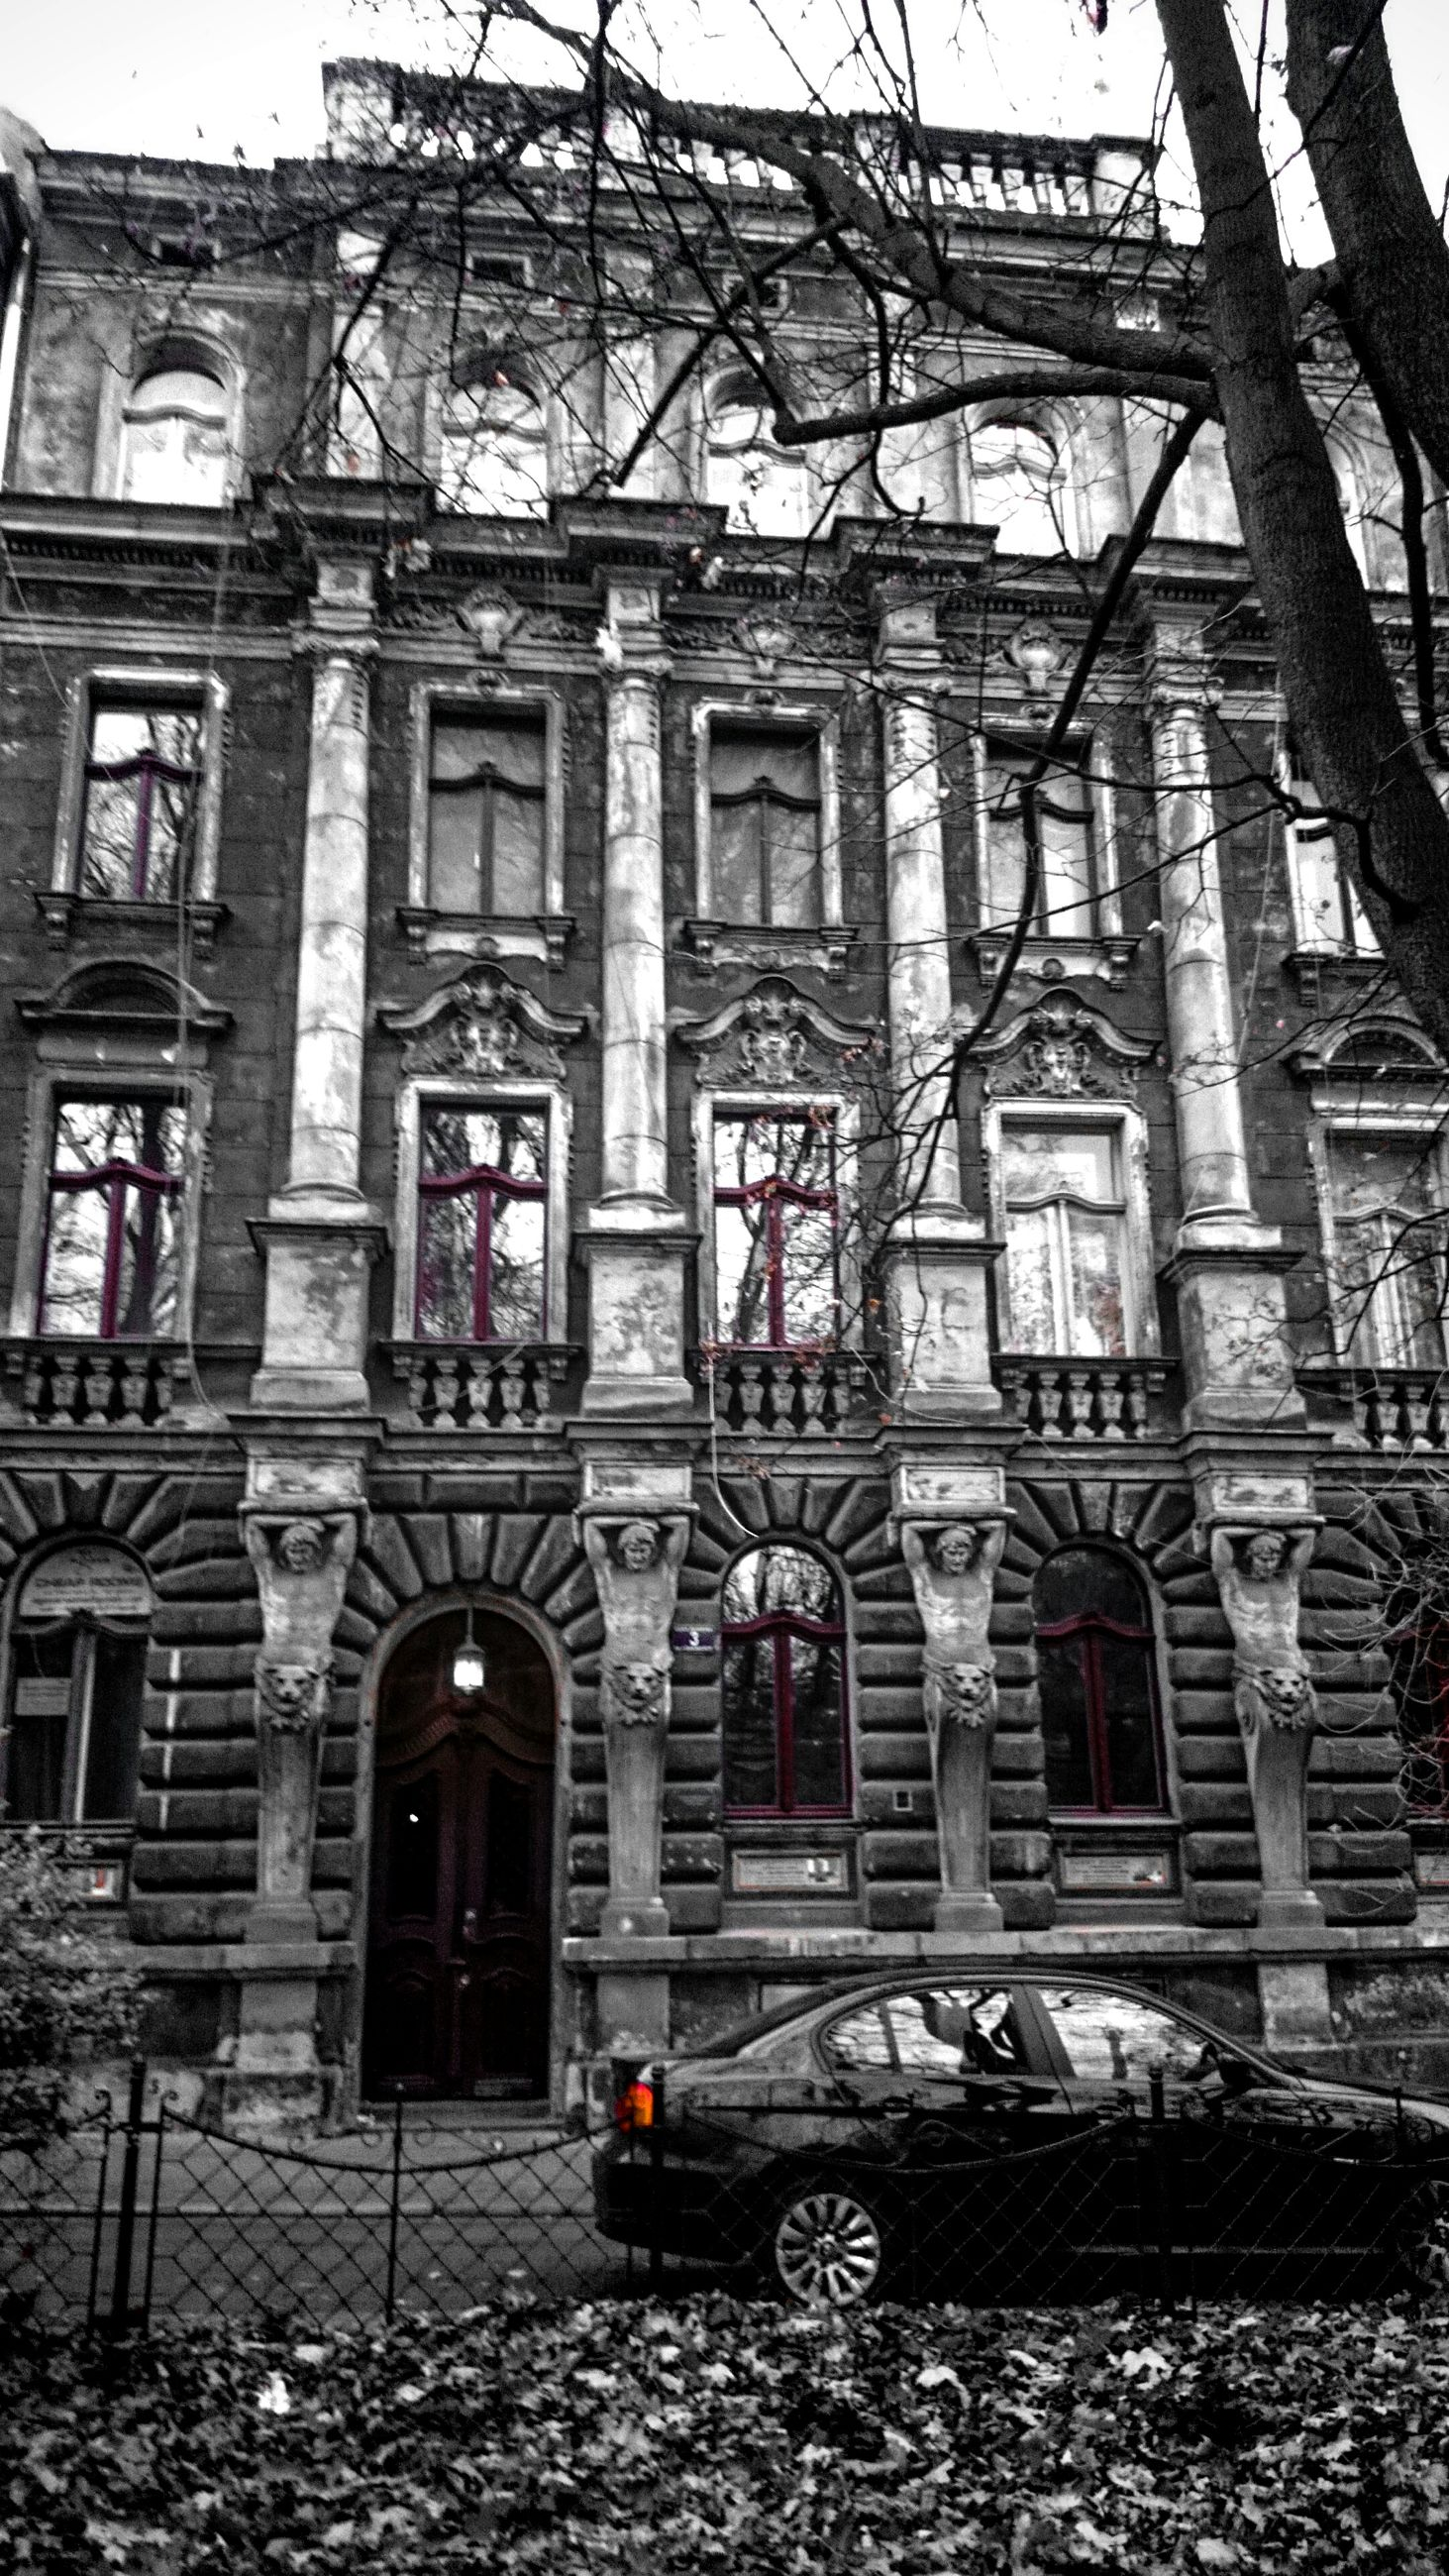 architecture, building exterior, built structure, window, graffiti, building, abandoned, day, residential building, residential structure, bare tree, old, outdoors, house, obsolete, no people, damaged, low angle view, city, facade